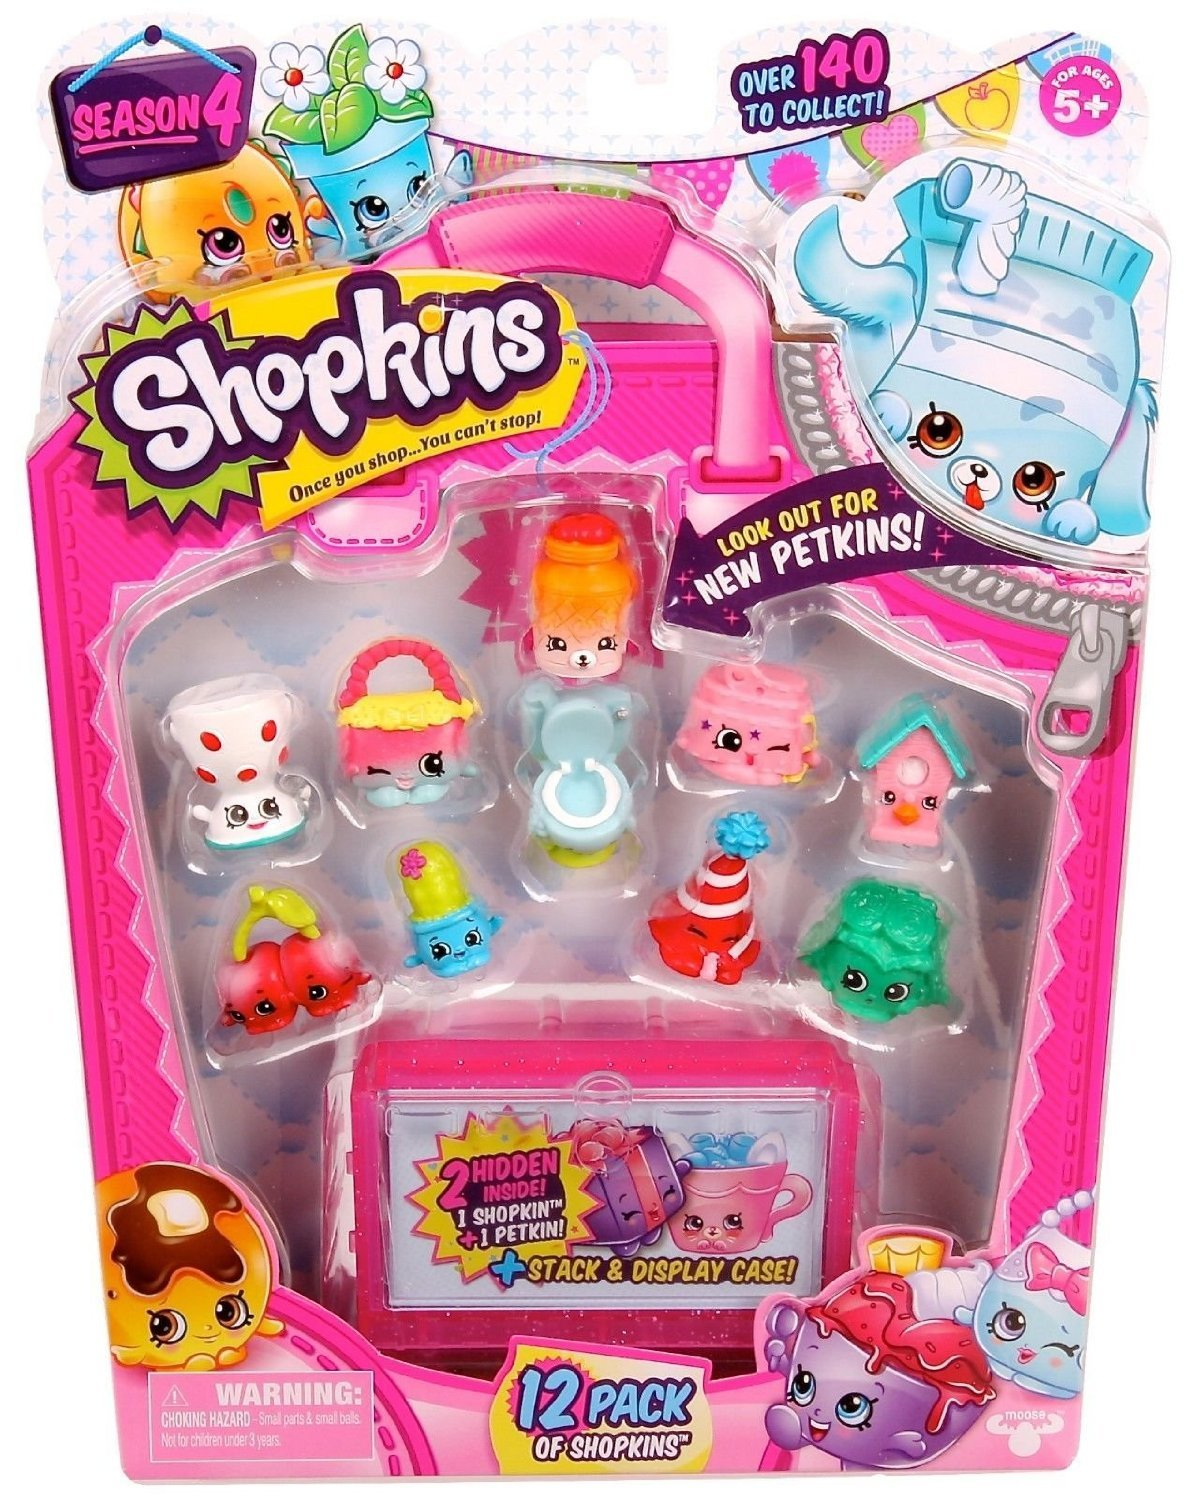 Shopkins: 12 Pack (Series 4) image